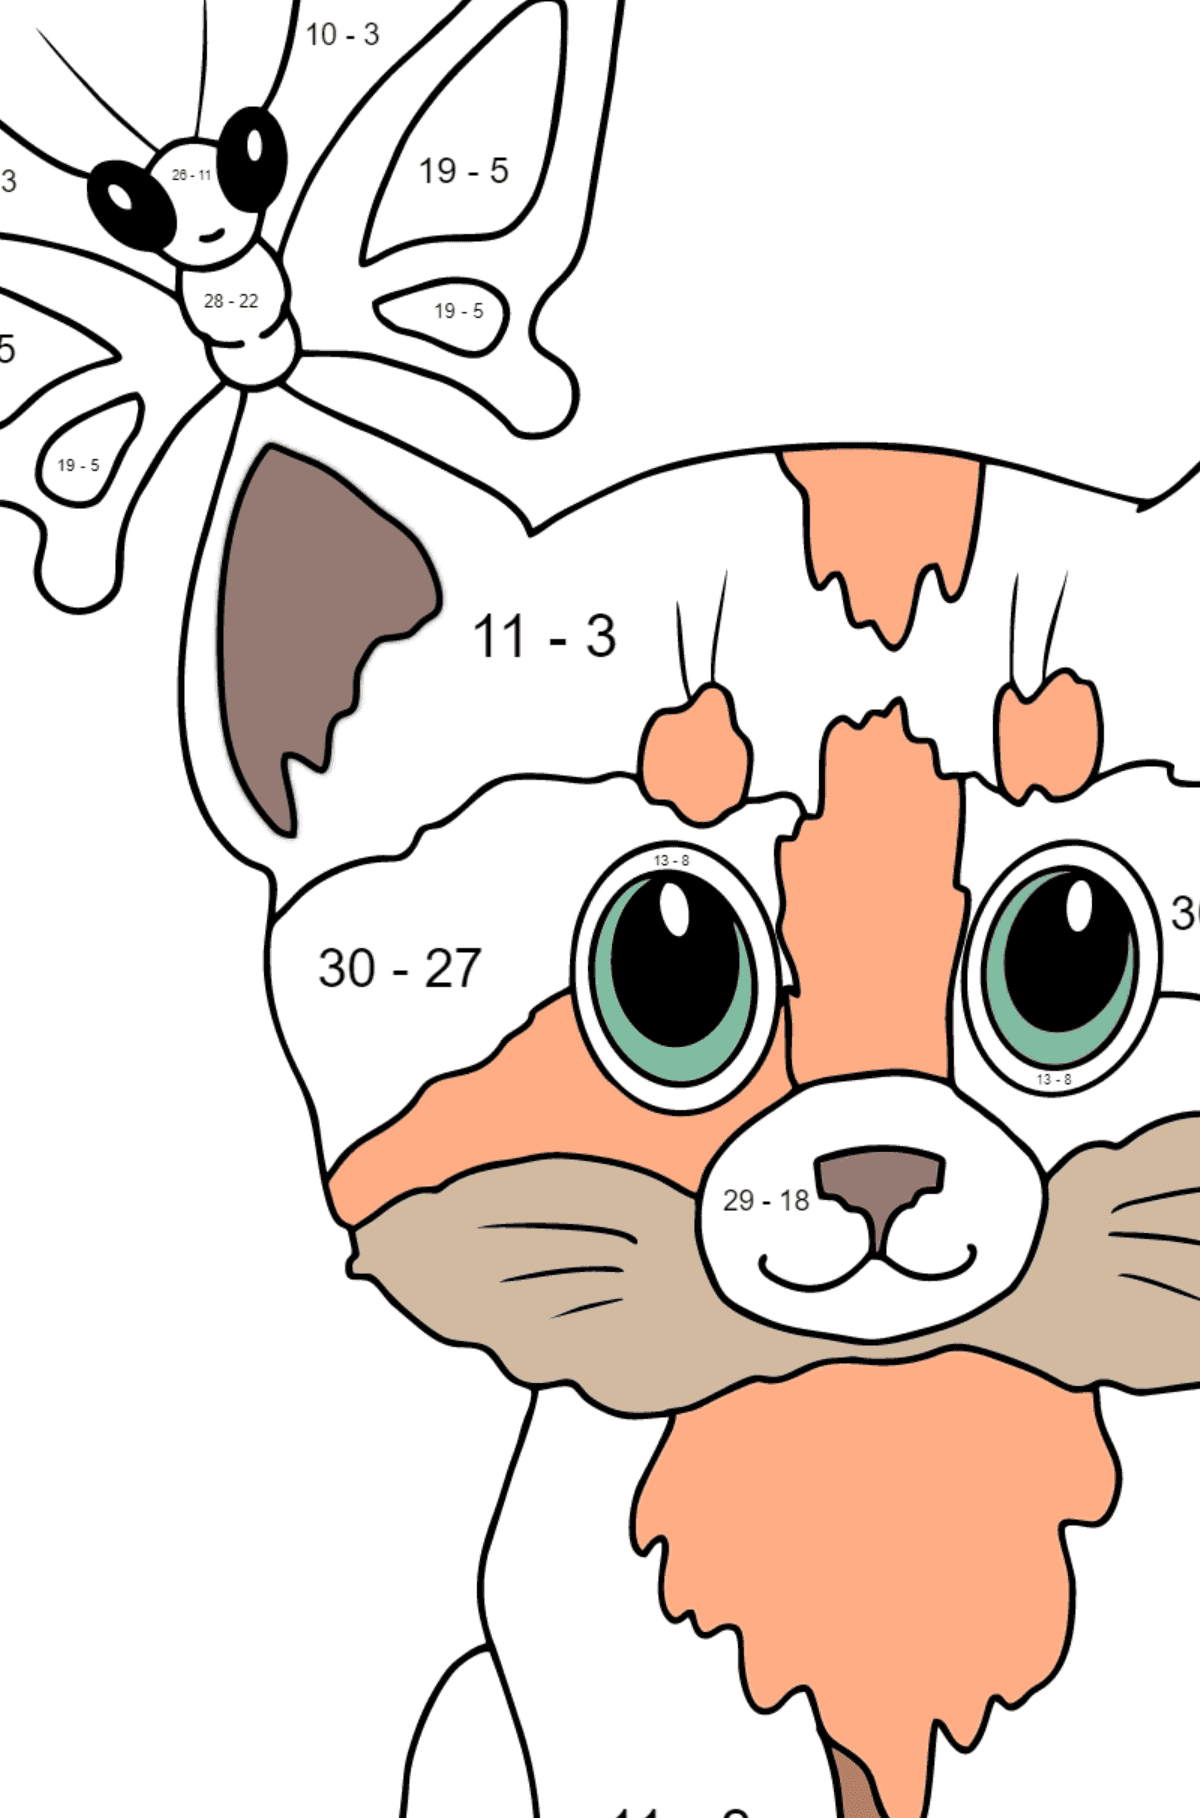 Coloring Page - A Cat with a Butterfly on Its Ear - Math Coloring - Subtraction for Kids